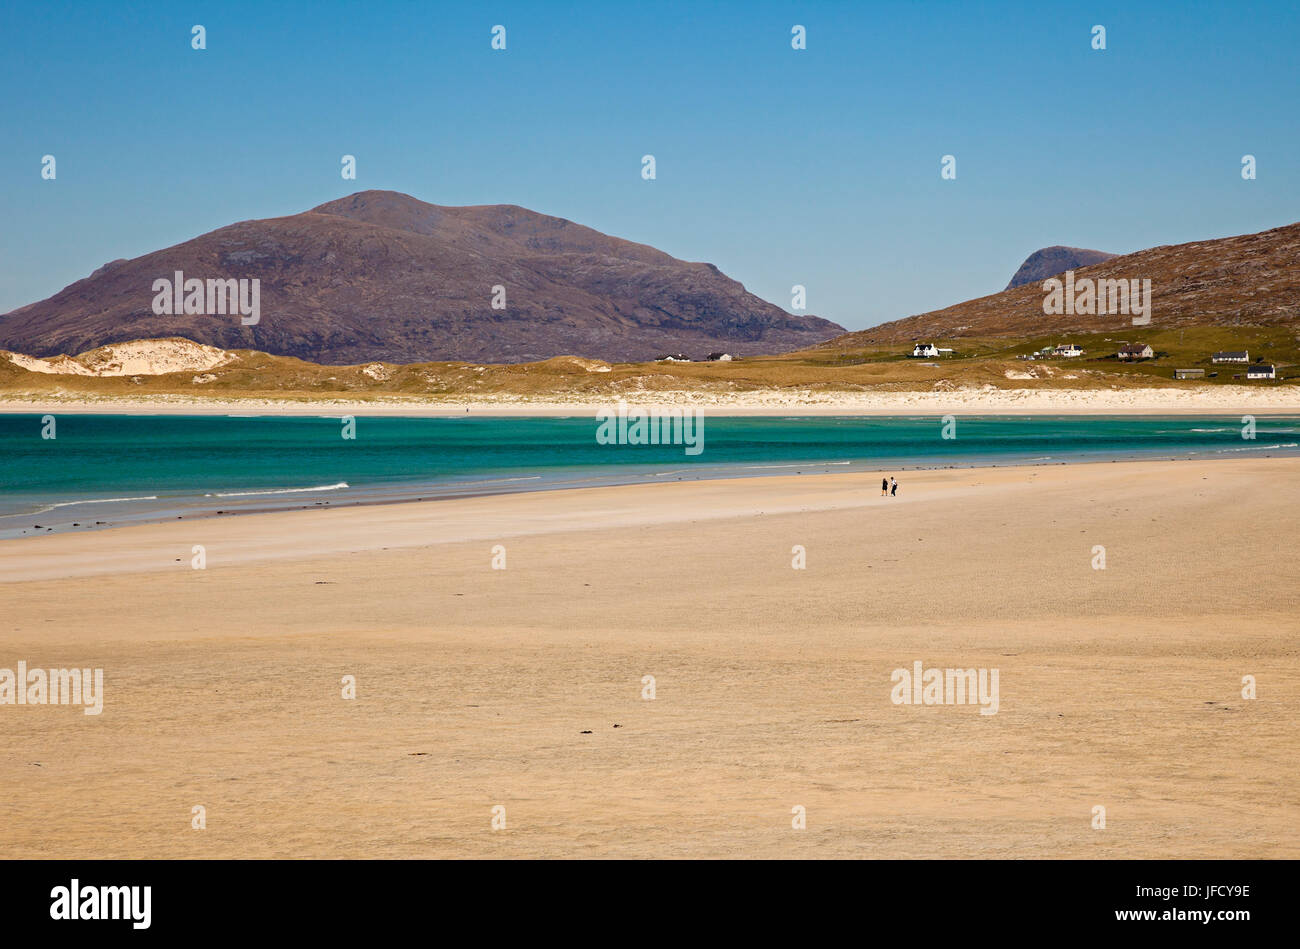 Isle of Harris, beach, outer Hebrides, Scotland - Stock Image